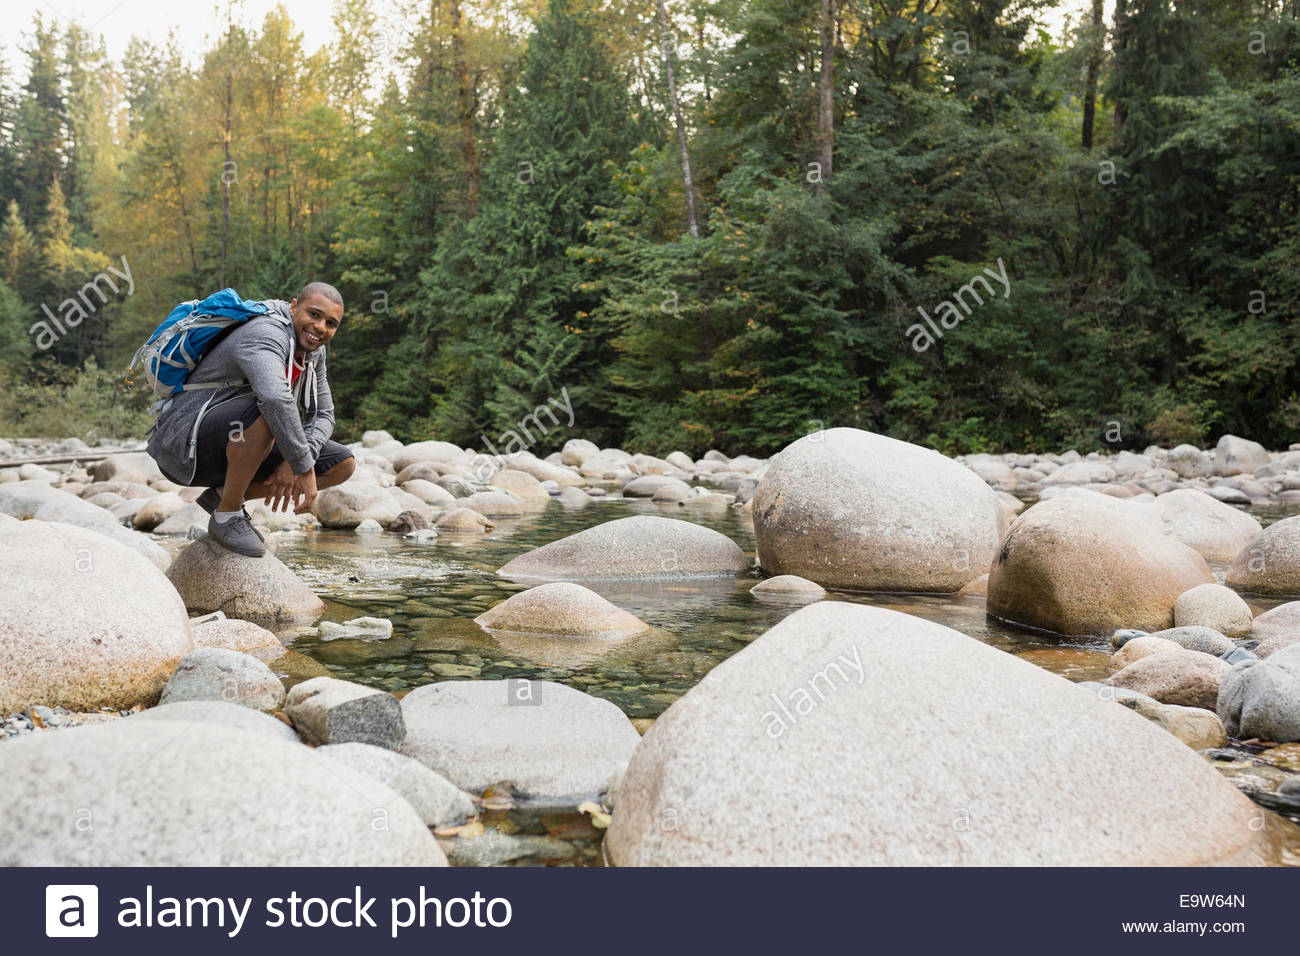 Portrait of man with backpack crouching at creekside - Stock Image